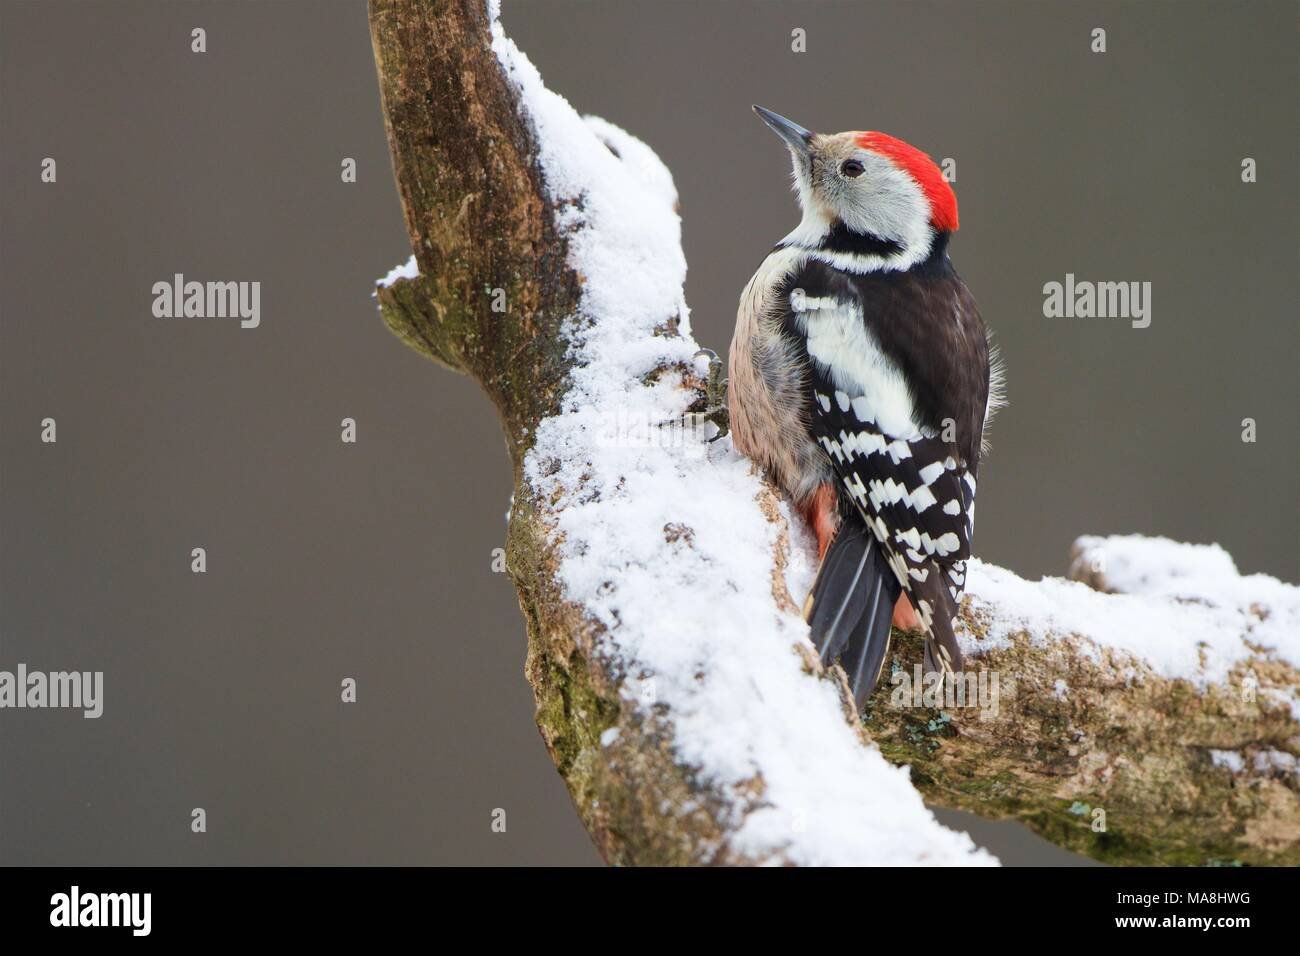 Middle Spotted Woodpecker (Leiopicus medius) perched in a snowed branch, Bialowieza Forest, Poland. Stock Photo